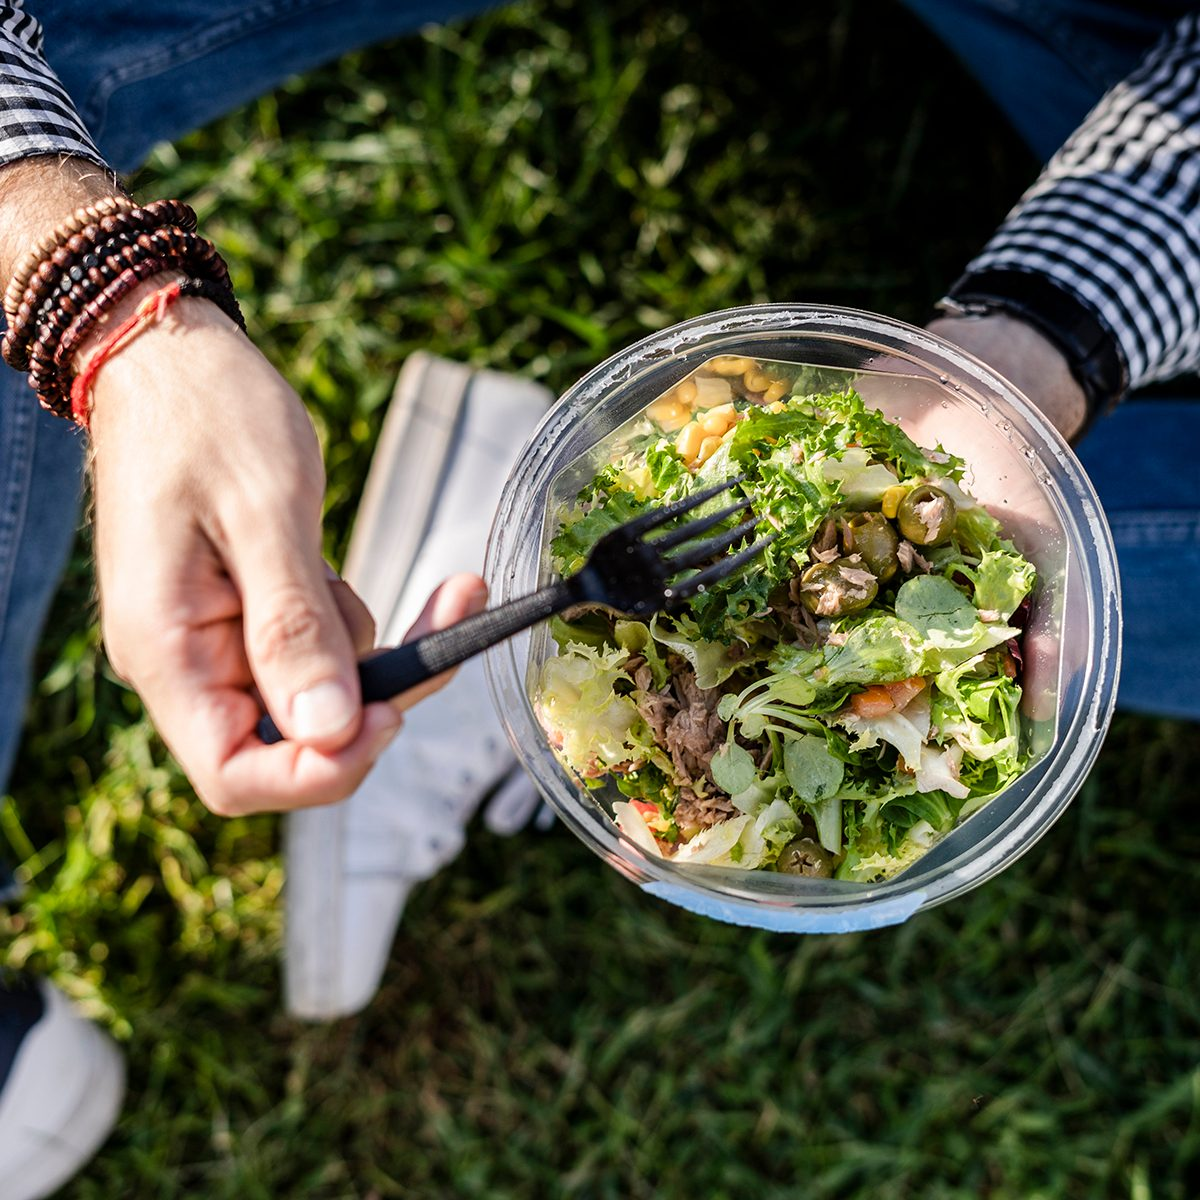 Person eating a salad in the grass